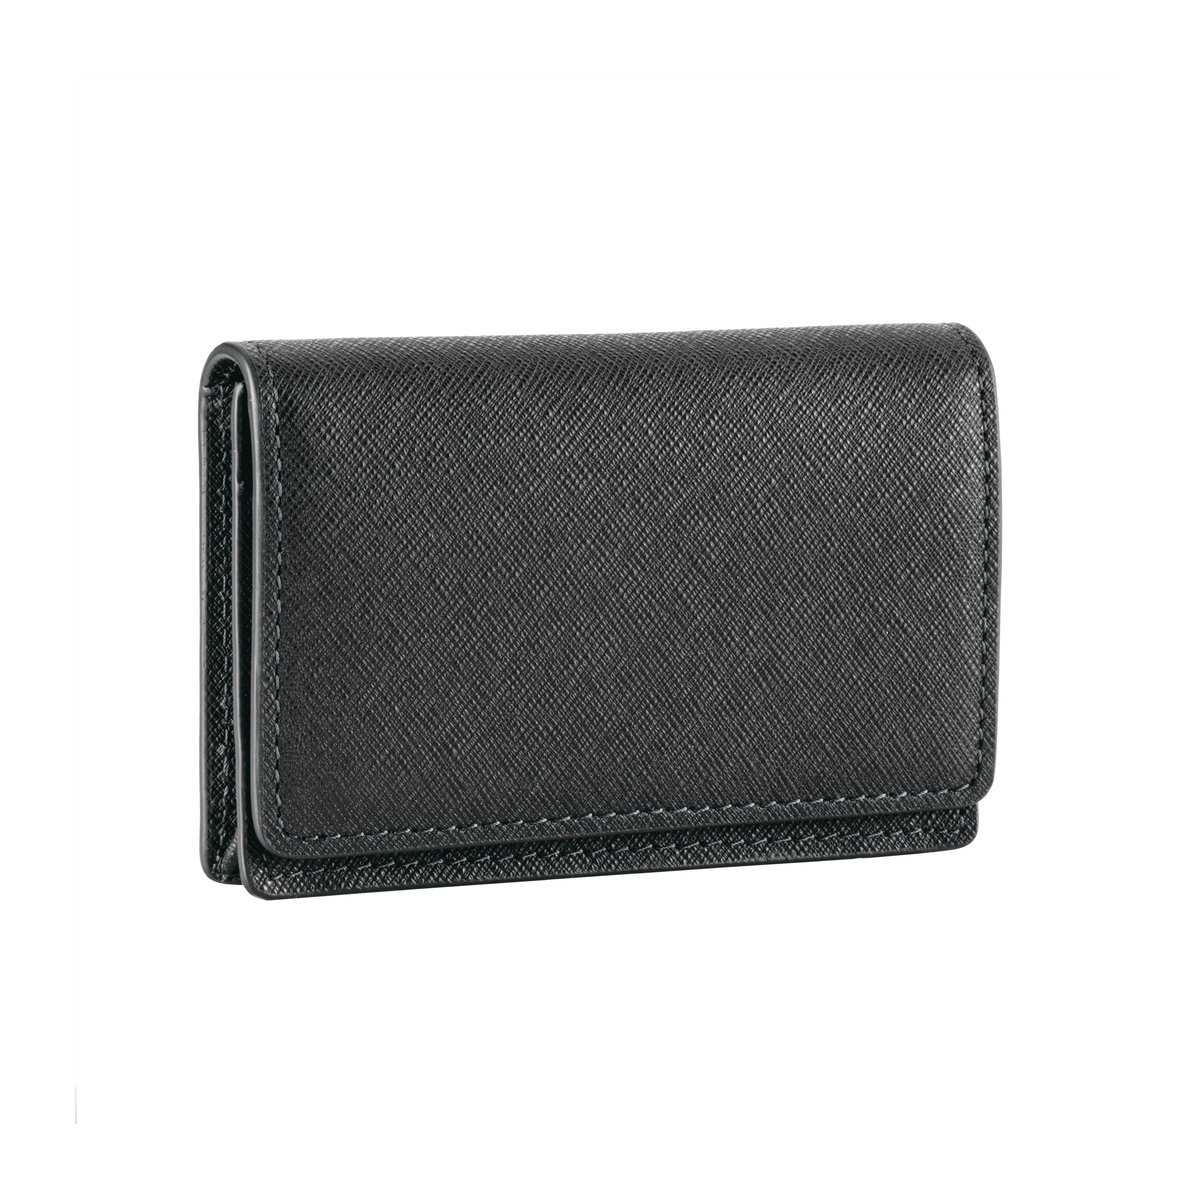 Black Sartorial Leather Business Card Case